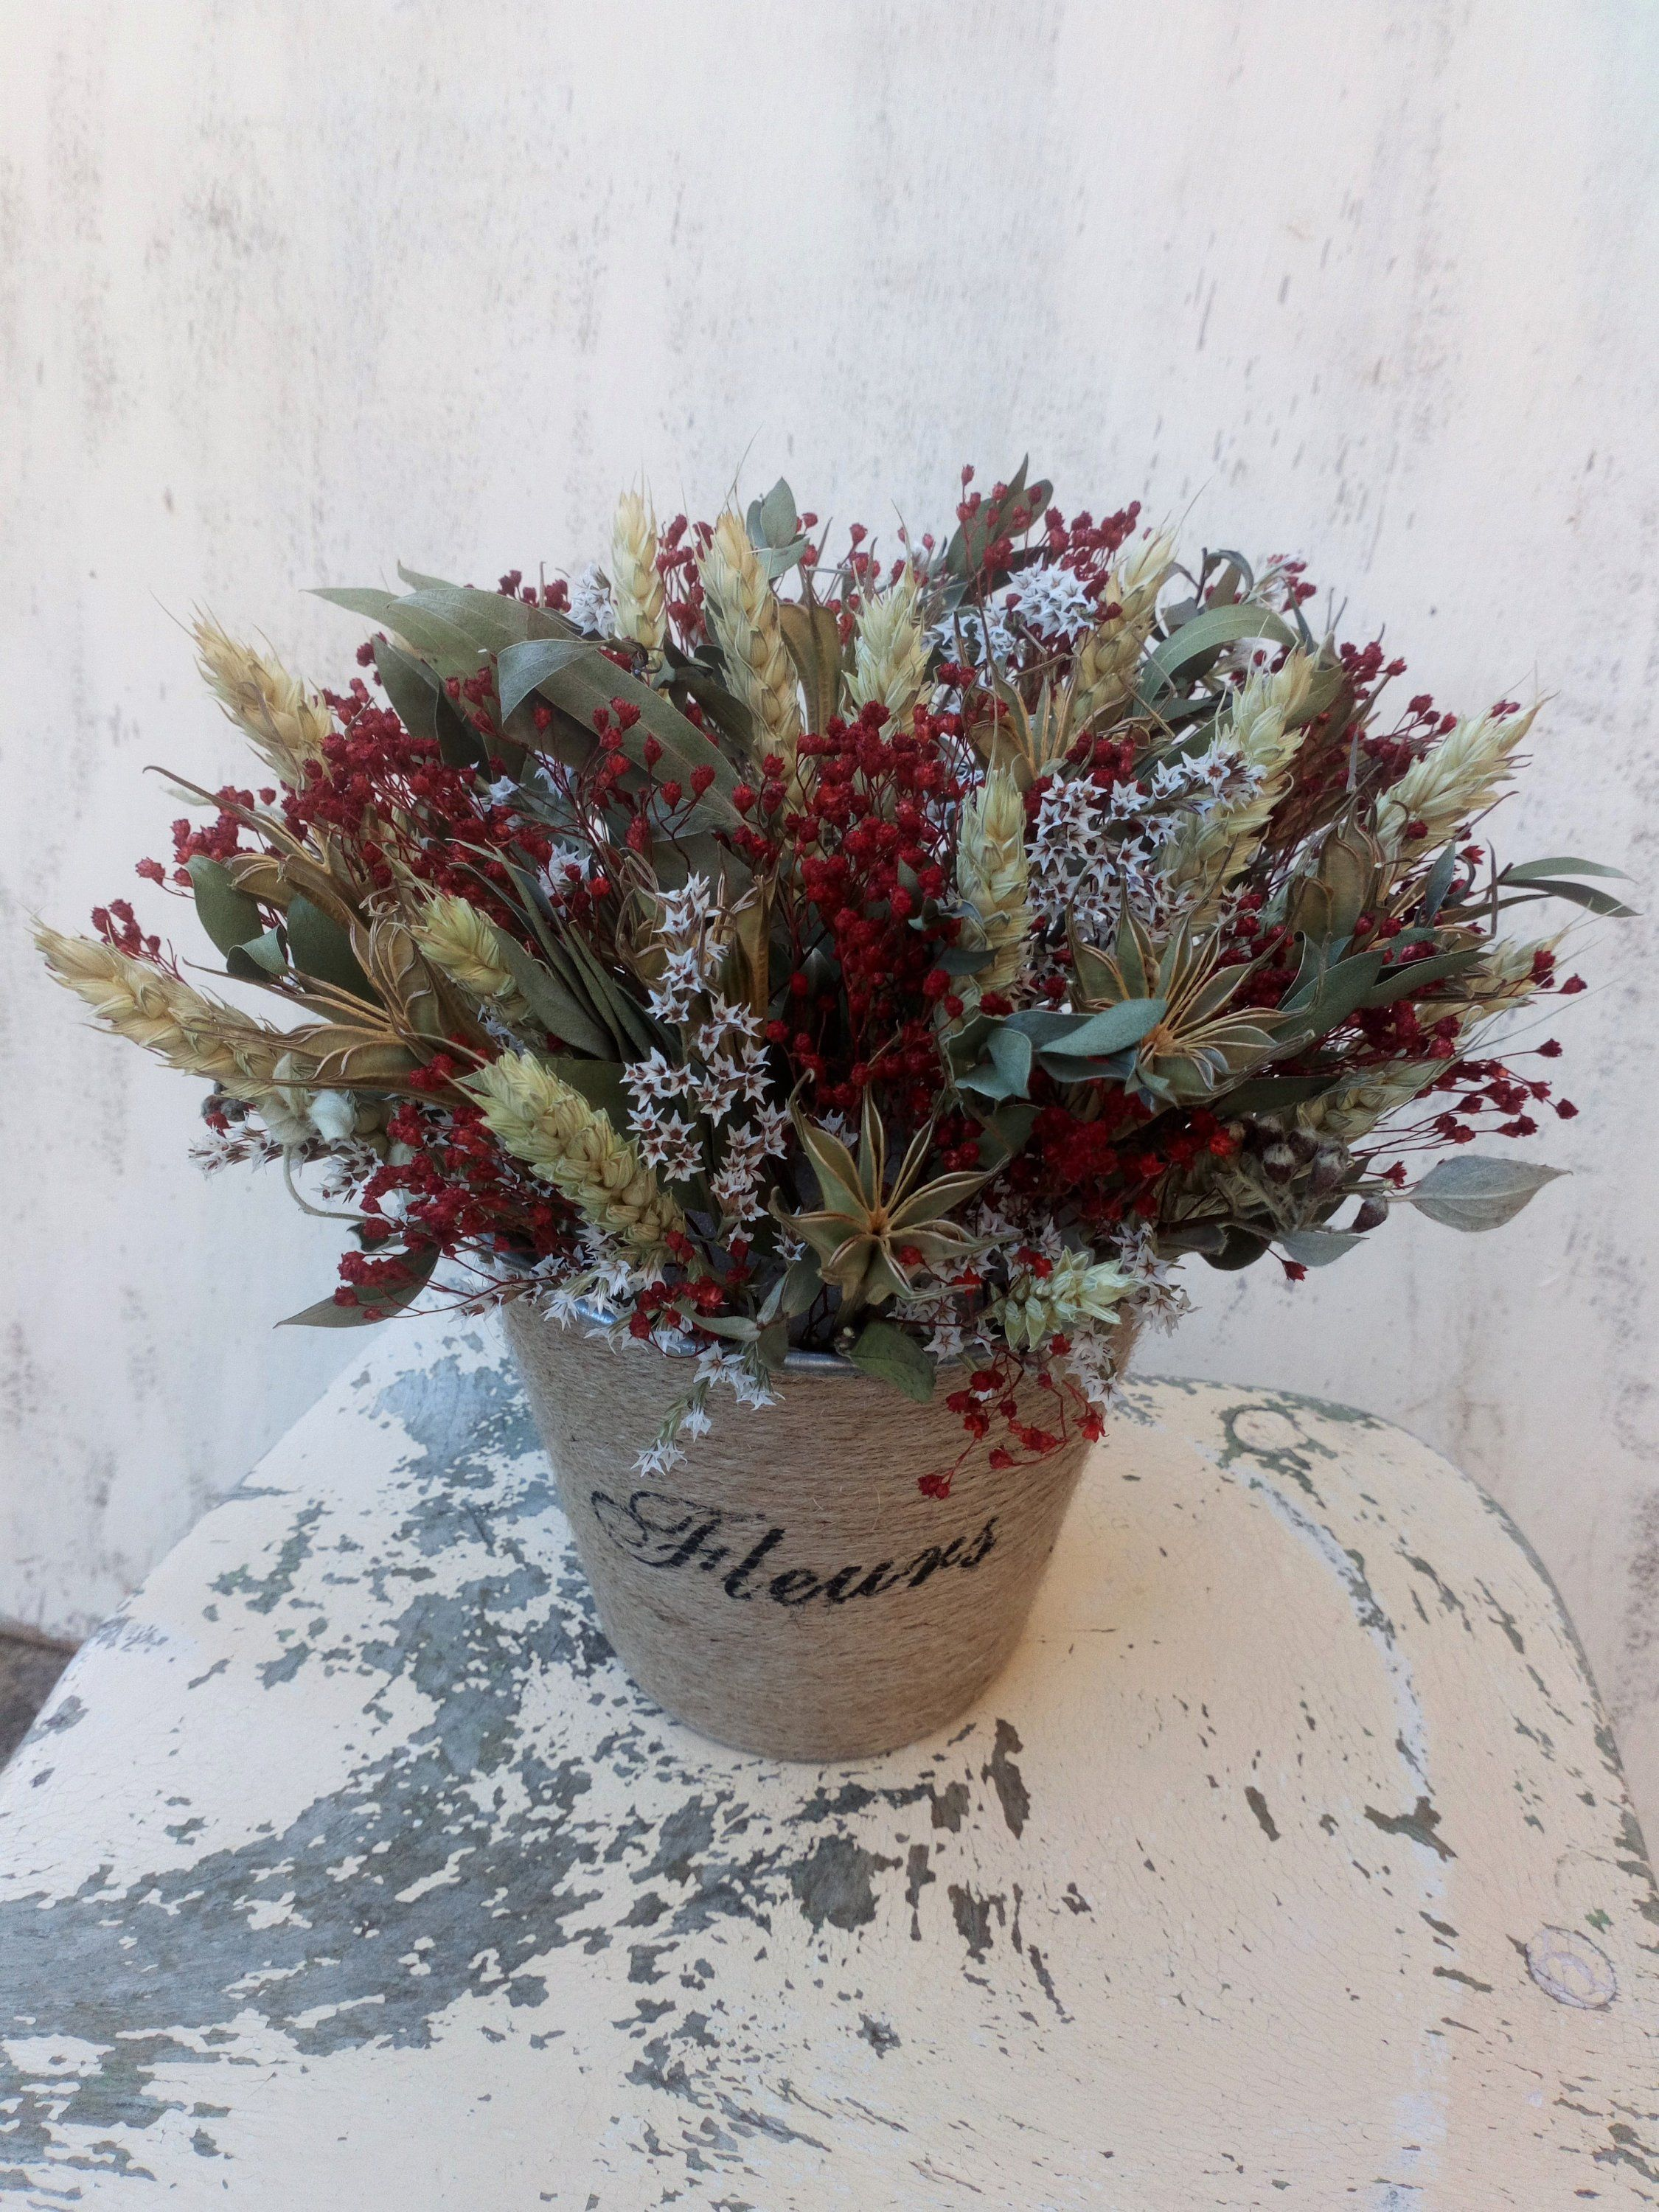 Dried Flower Christmas Arrangement Table Decor Wedding Etsy Christmas Arrangements Winter Christmas Gifts Dried Flowers